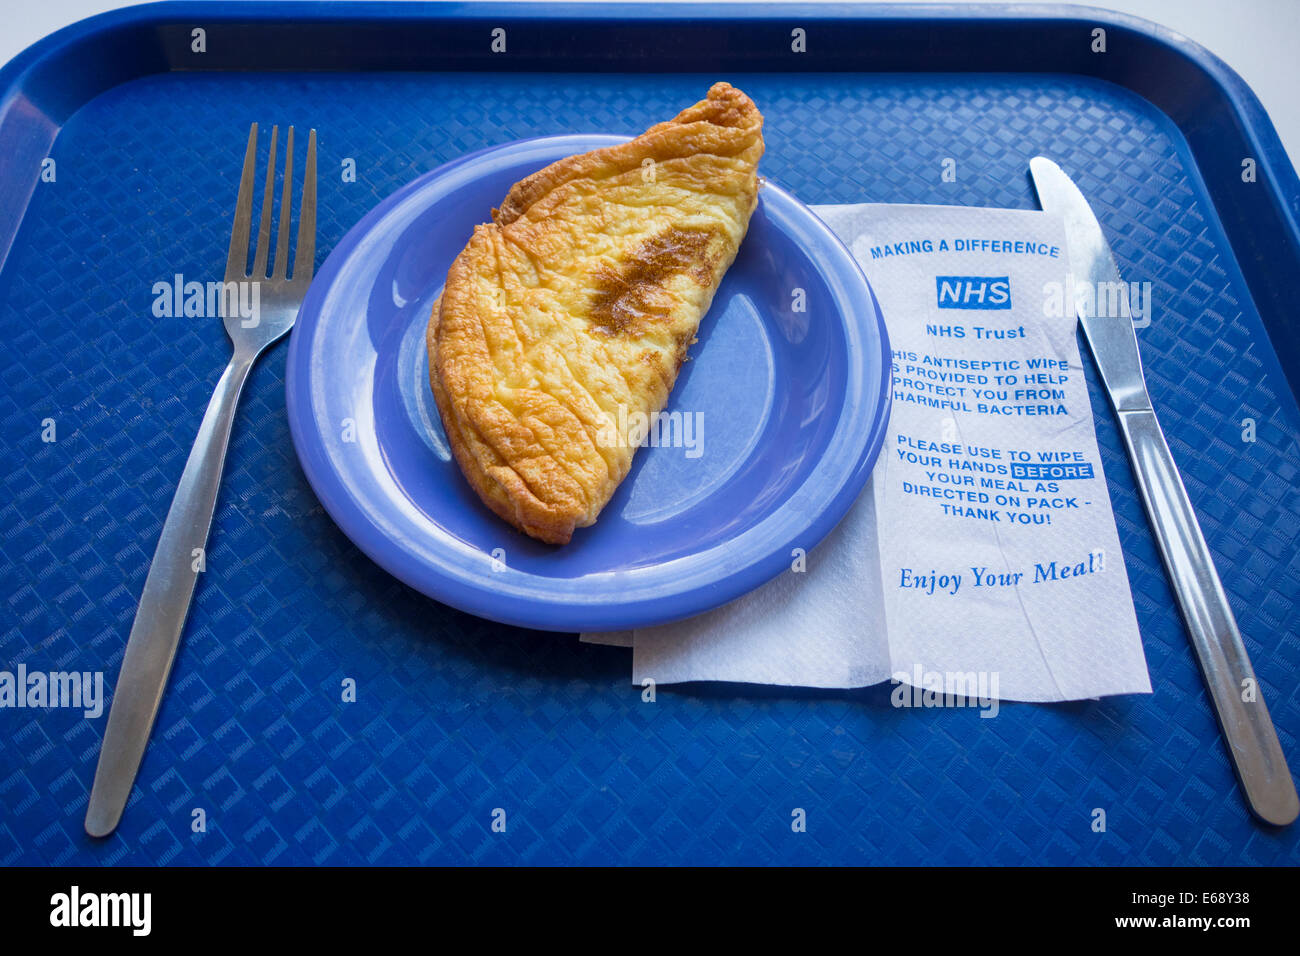 Patients food (omelette) on tray in NHS hospital. England, UK - Stock Image